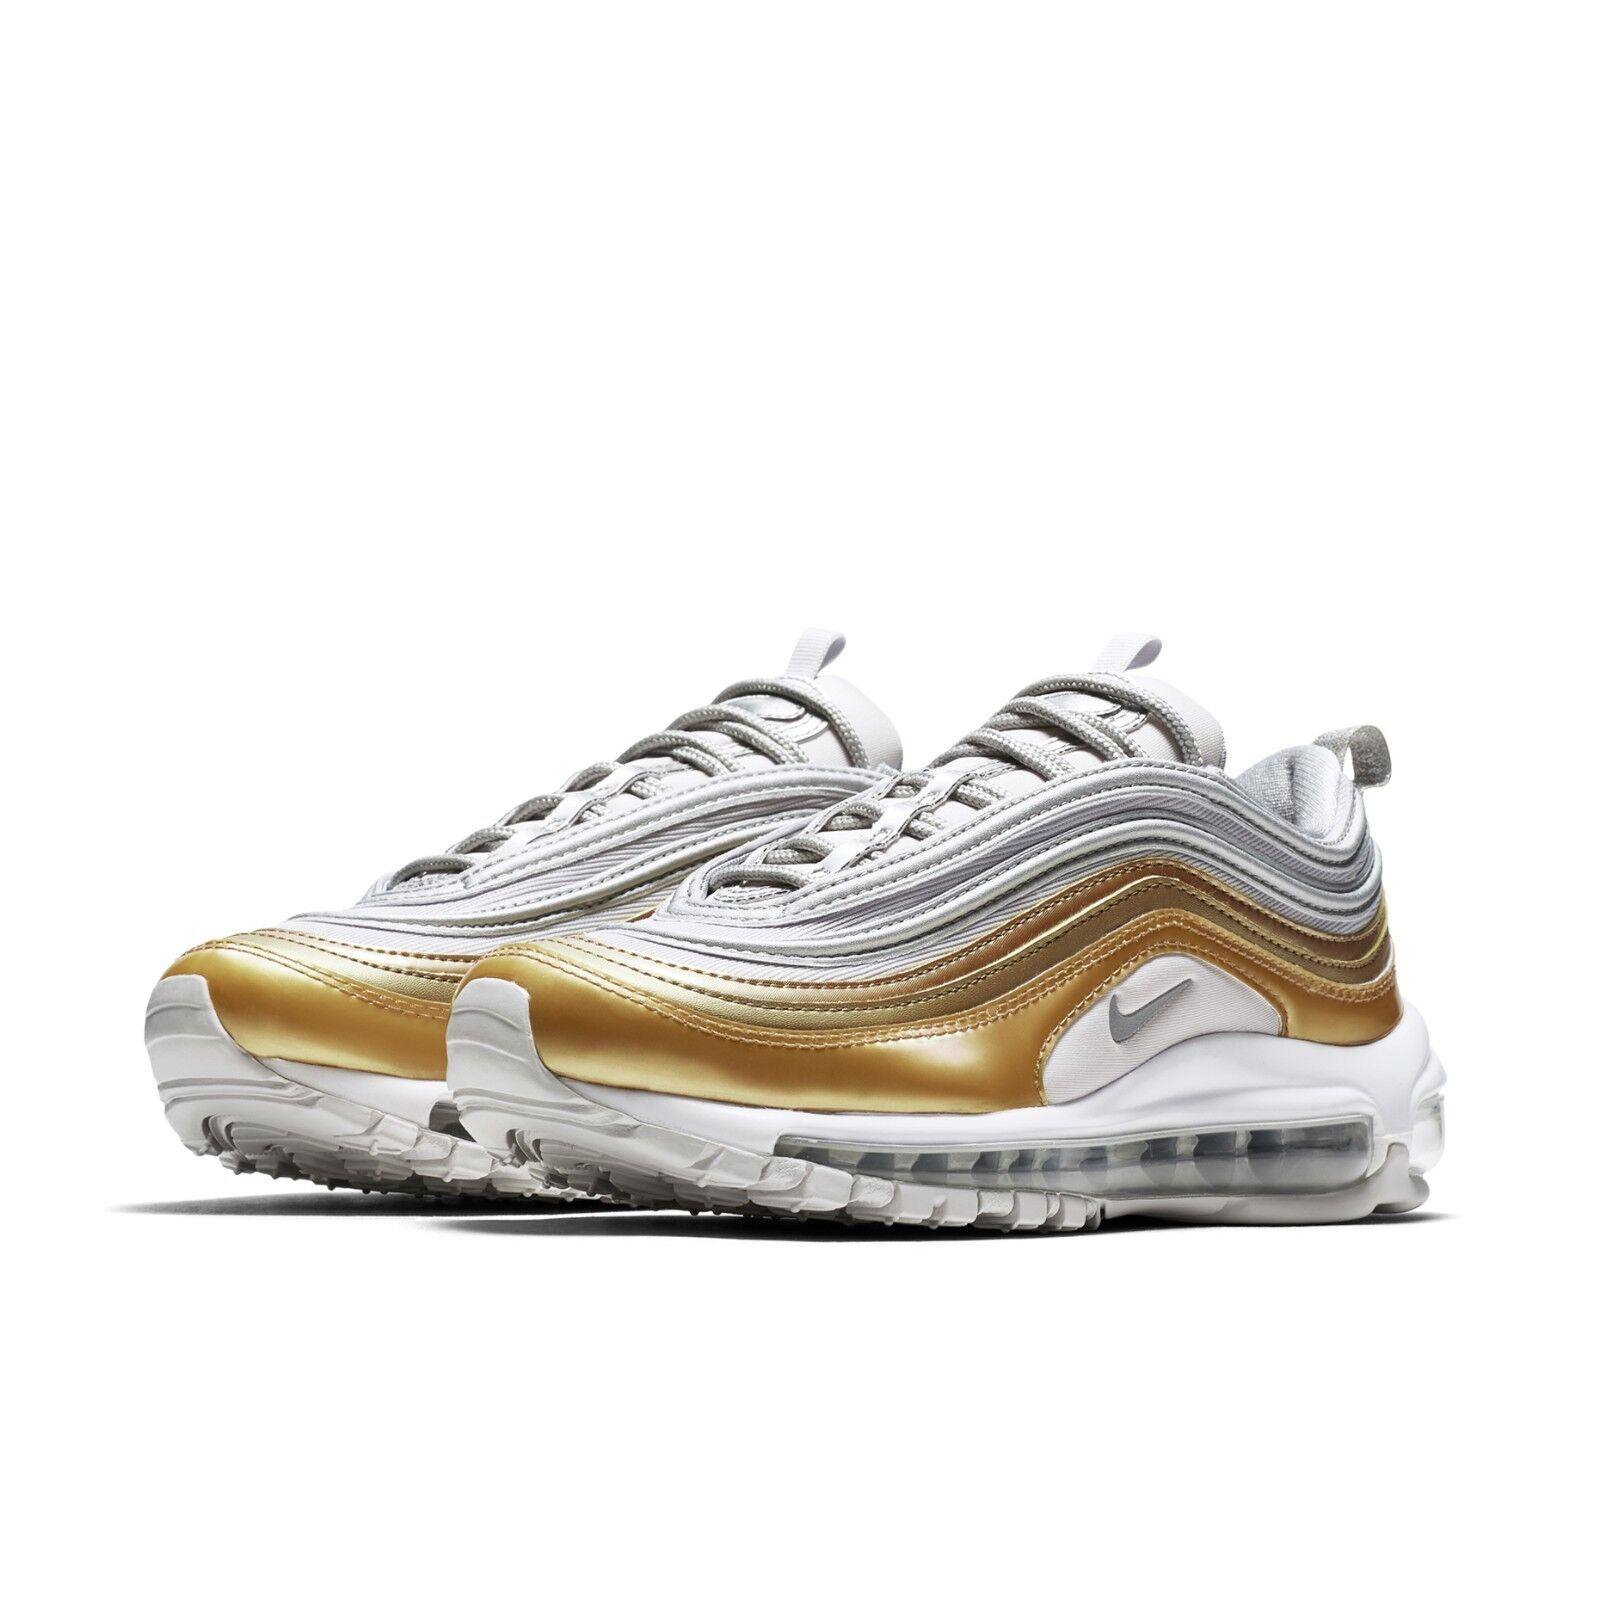 fe0df789f812a Nike Womens Wmns Air Max 97 SE Metallic Silver Vast Grey Gold Shoes  AQ4137-001